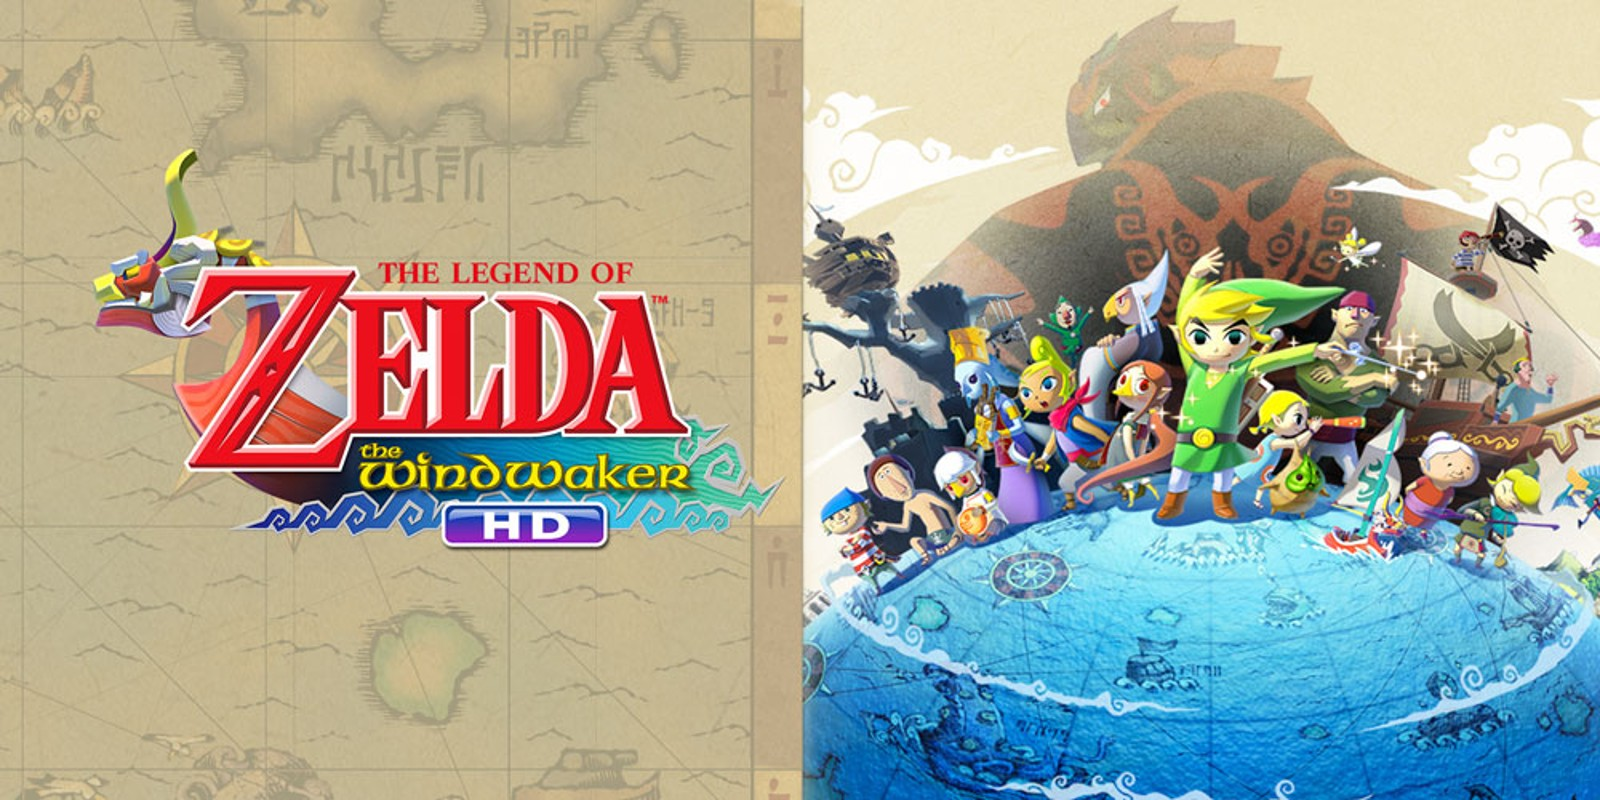 How to play the legend of zelda: wind waker hd on pc and mac.